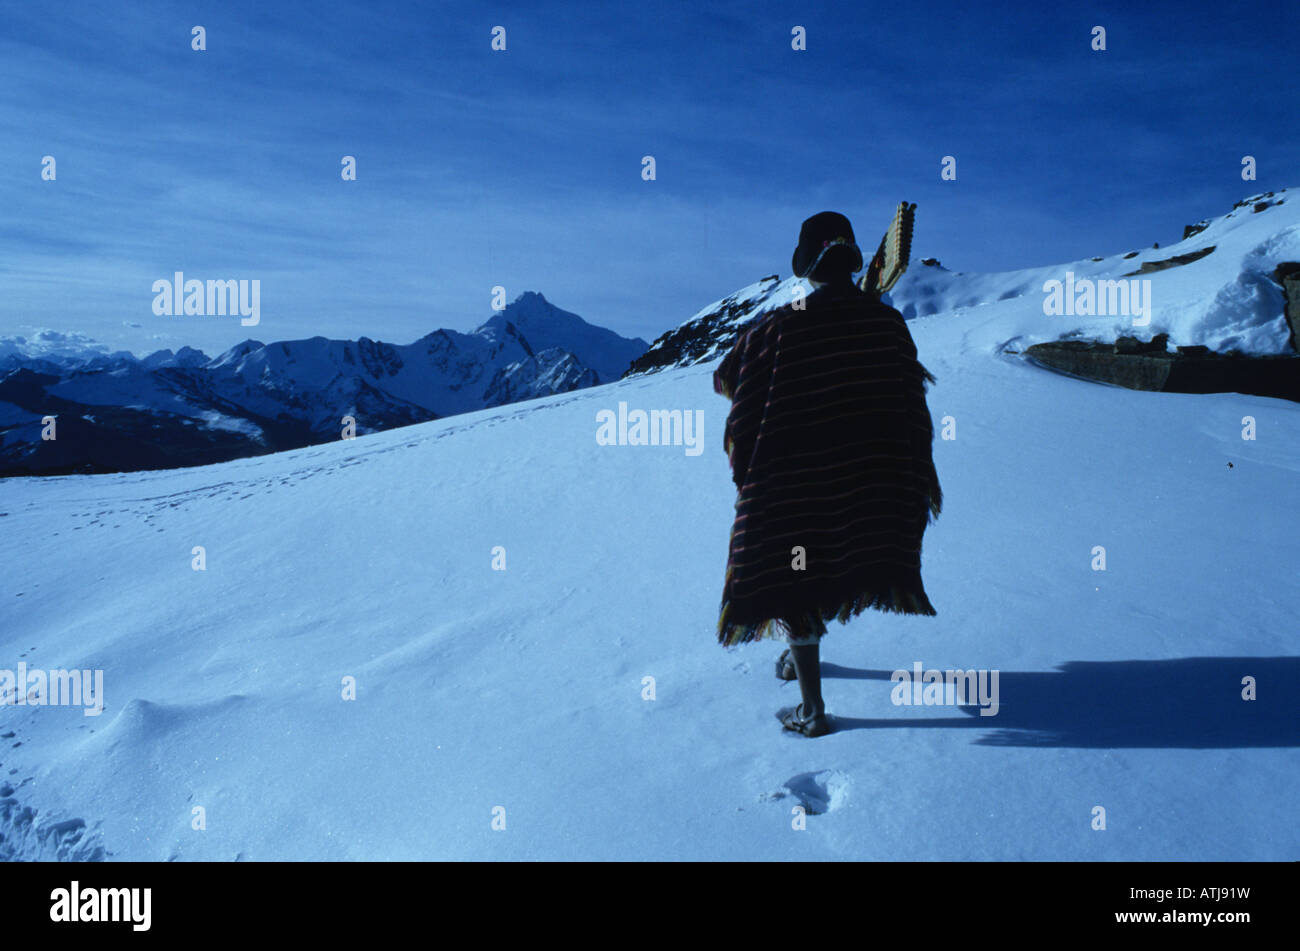 Tarabuco Indian walking on the Chacaltaya peaks of Cordillera Real, south of La Paz, Bolivia. - Stock Image